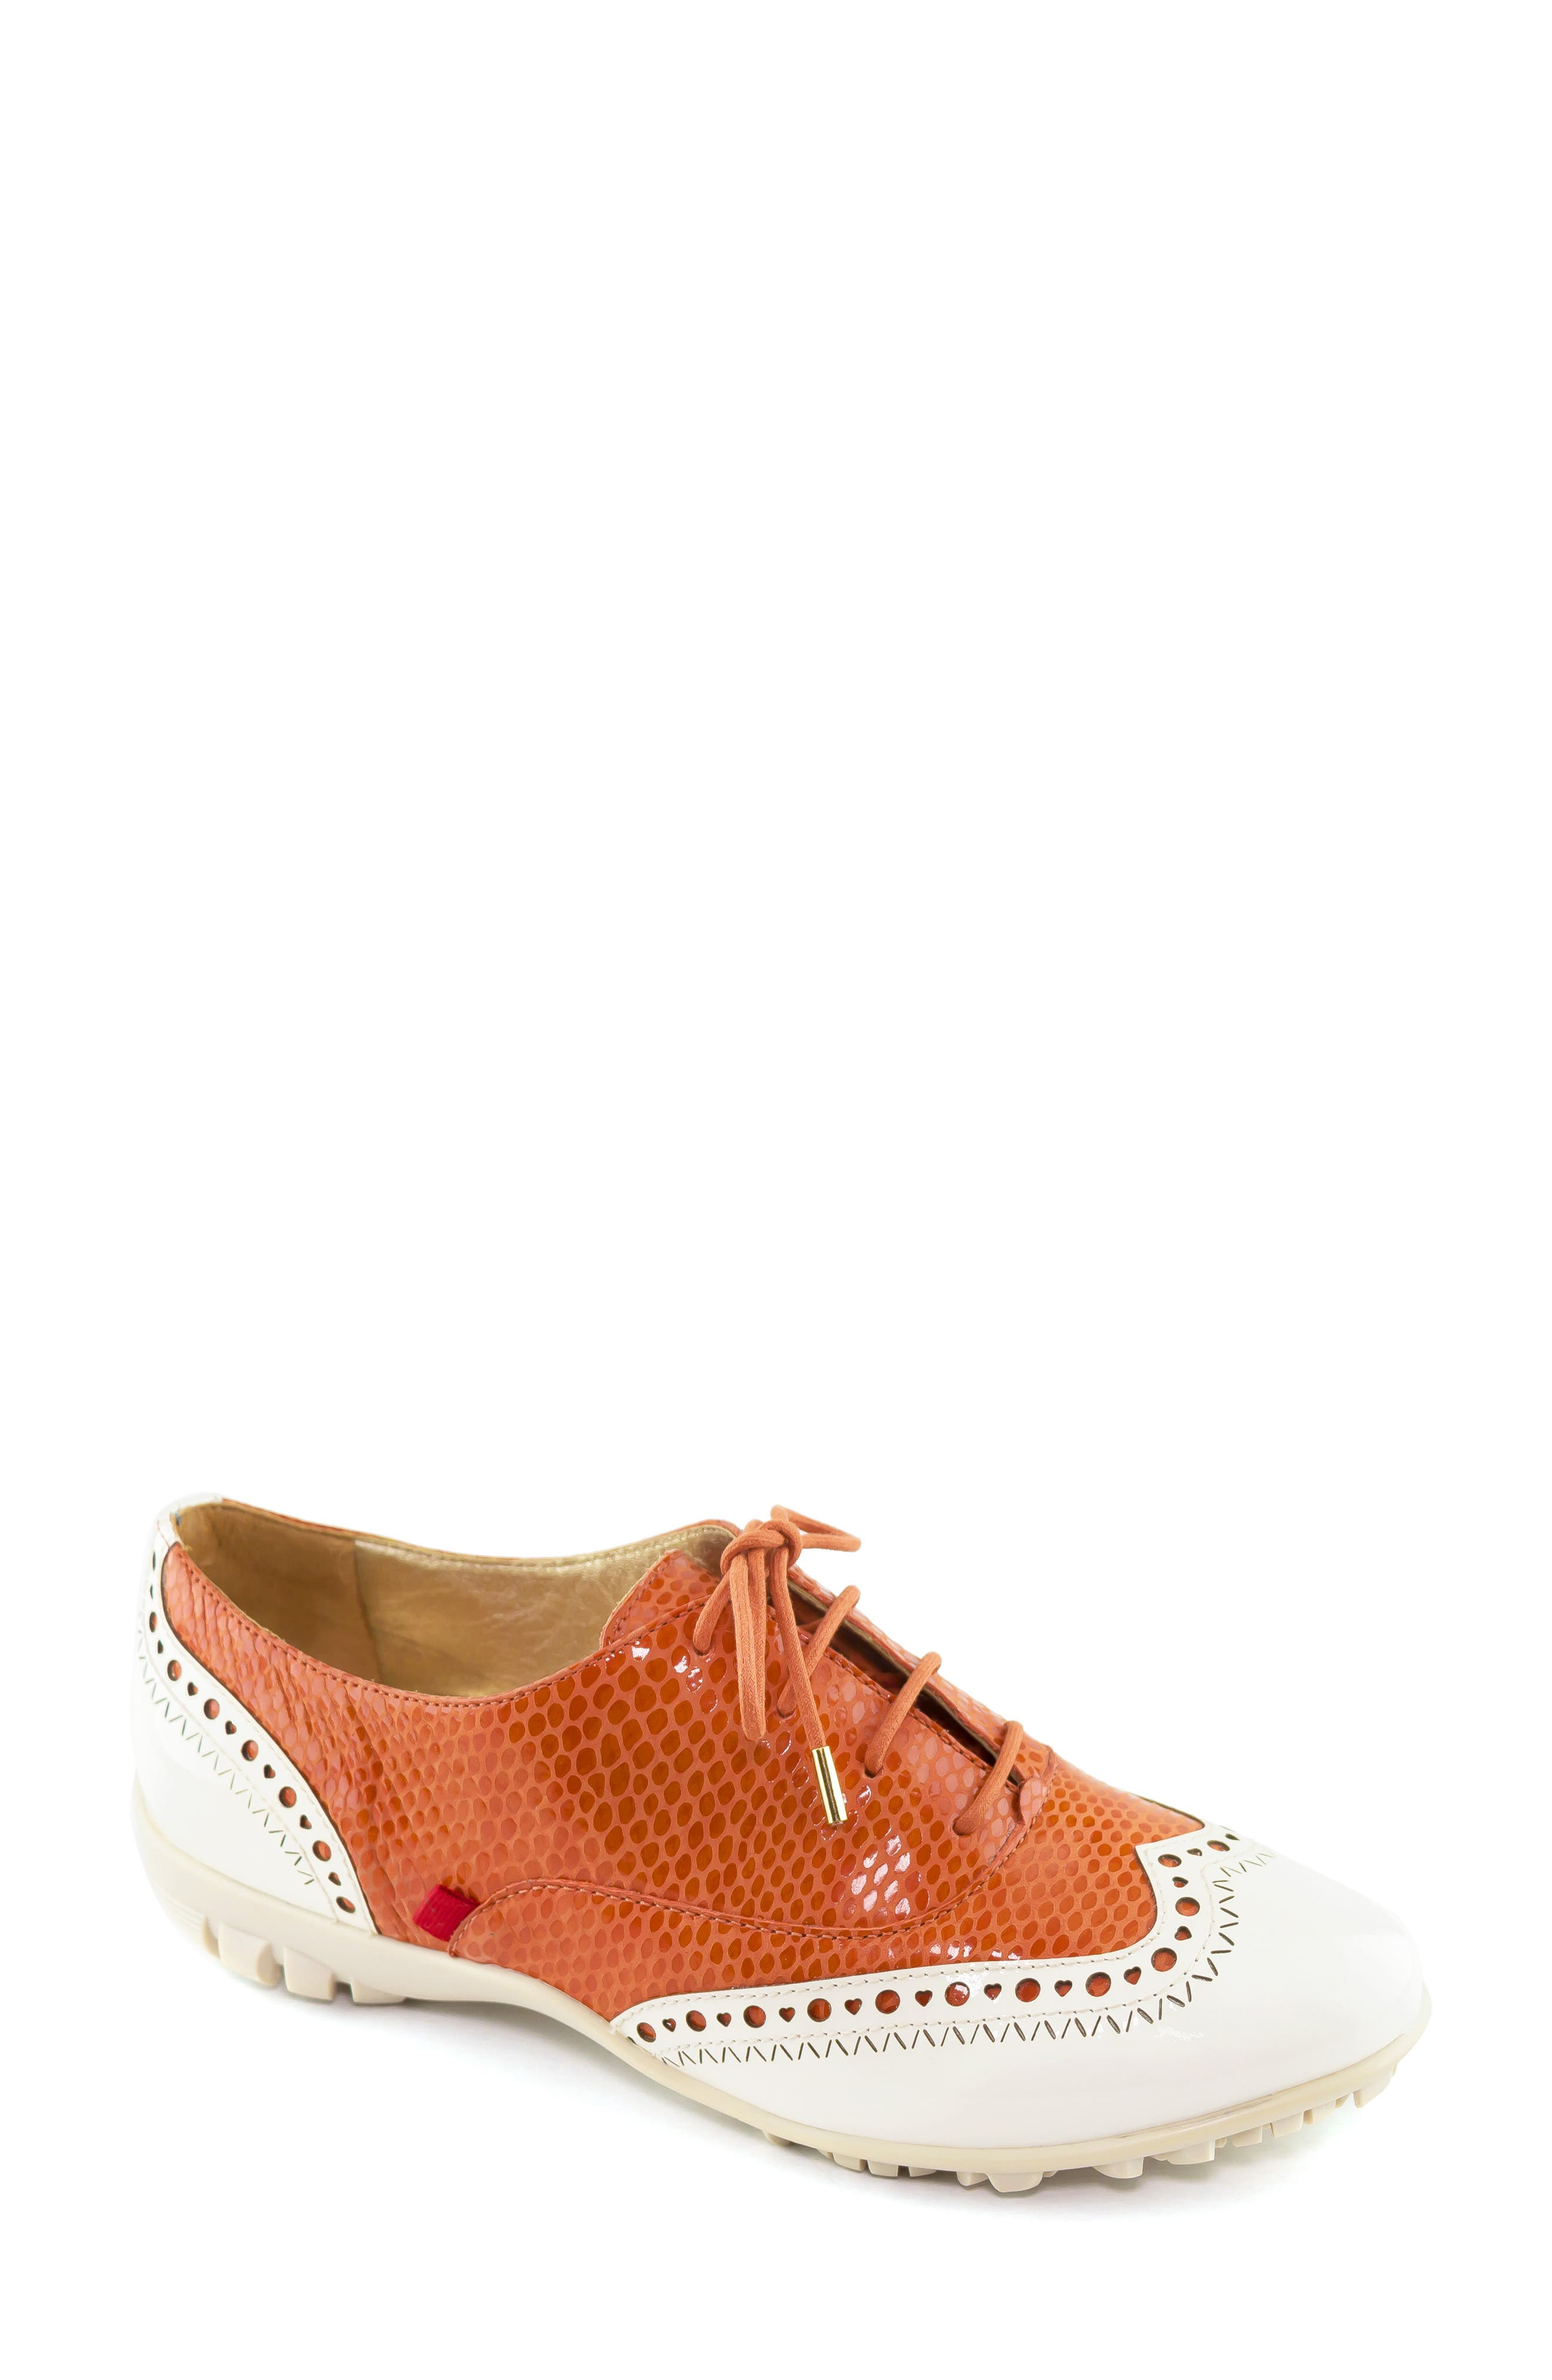 MARC JOSEPH NEW YORK, NYC Golf Loafer, Main thumbnail 1, color, CORAL SNAKE PRINT LEATHER